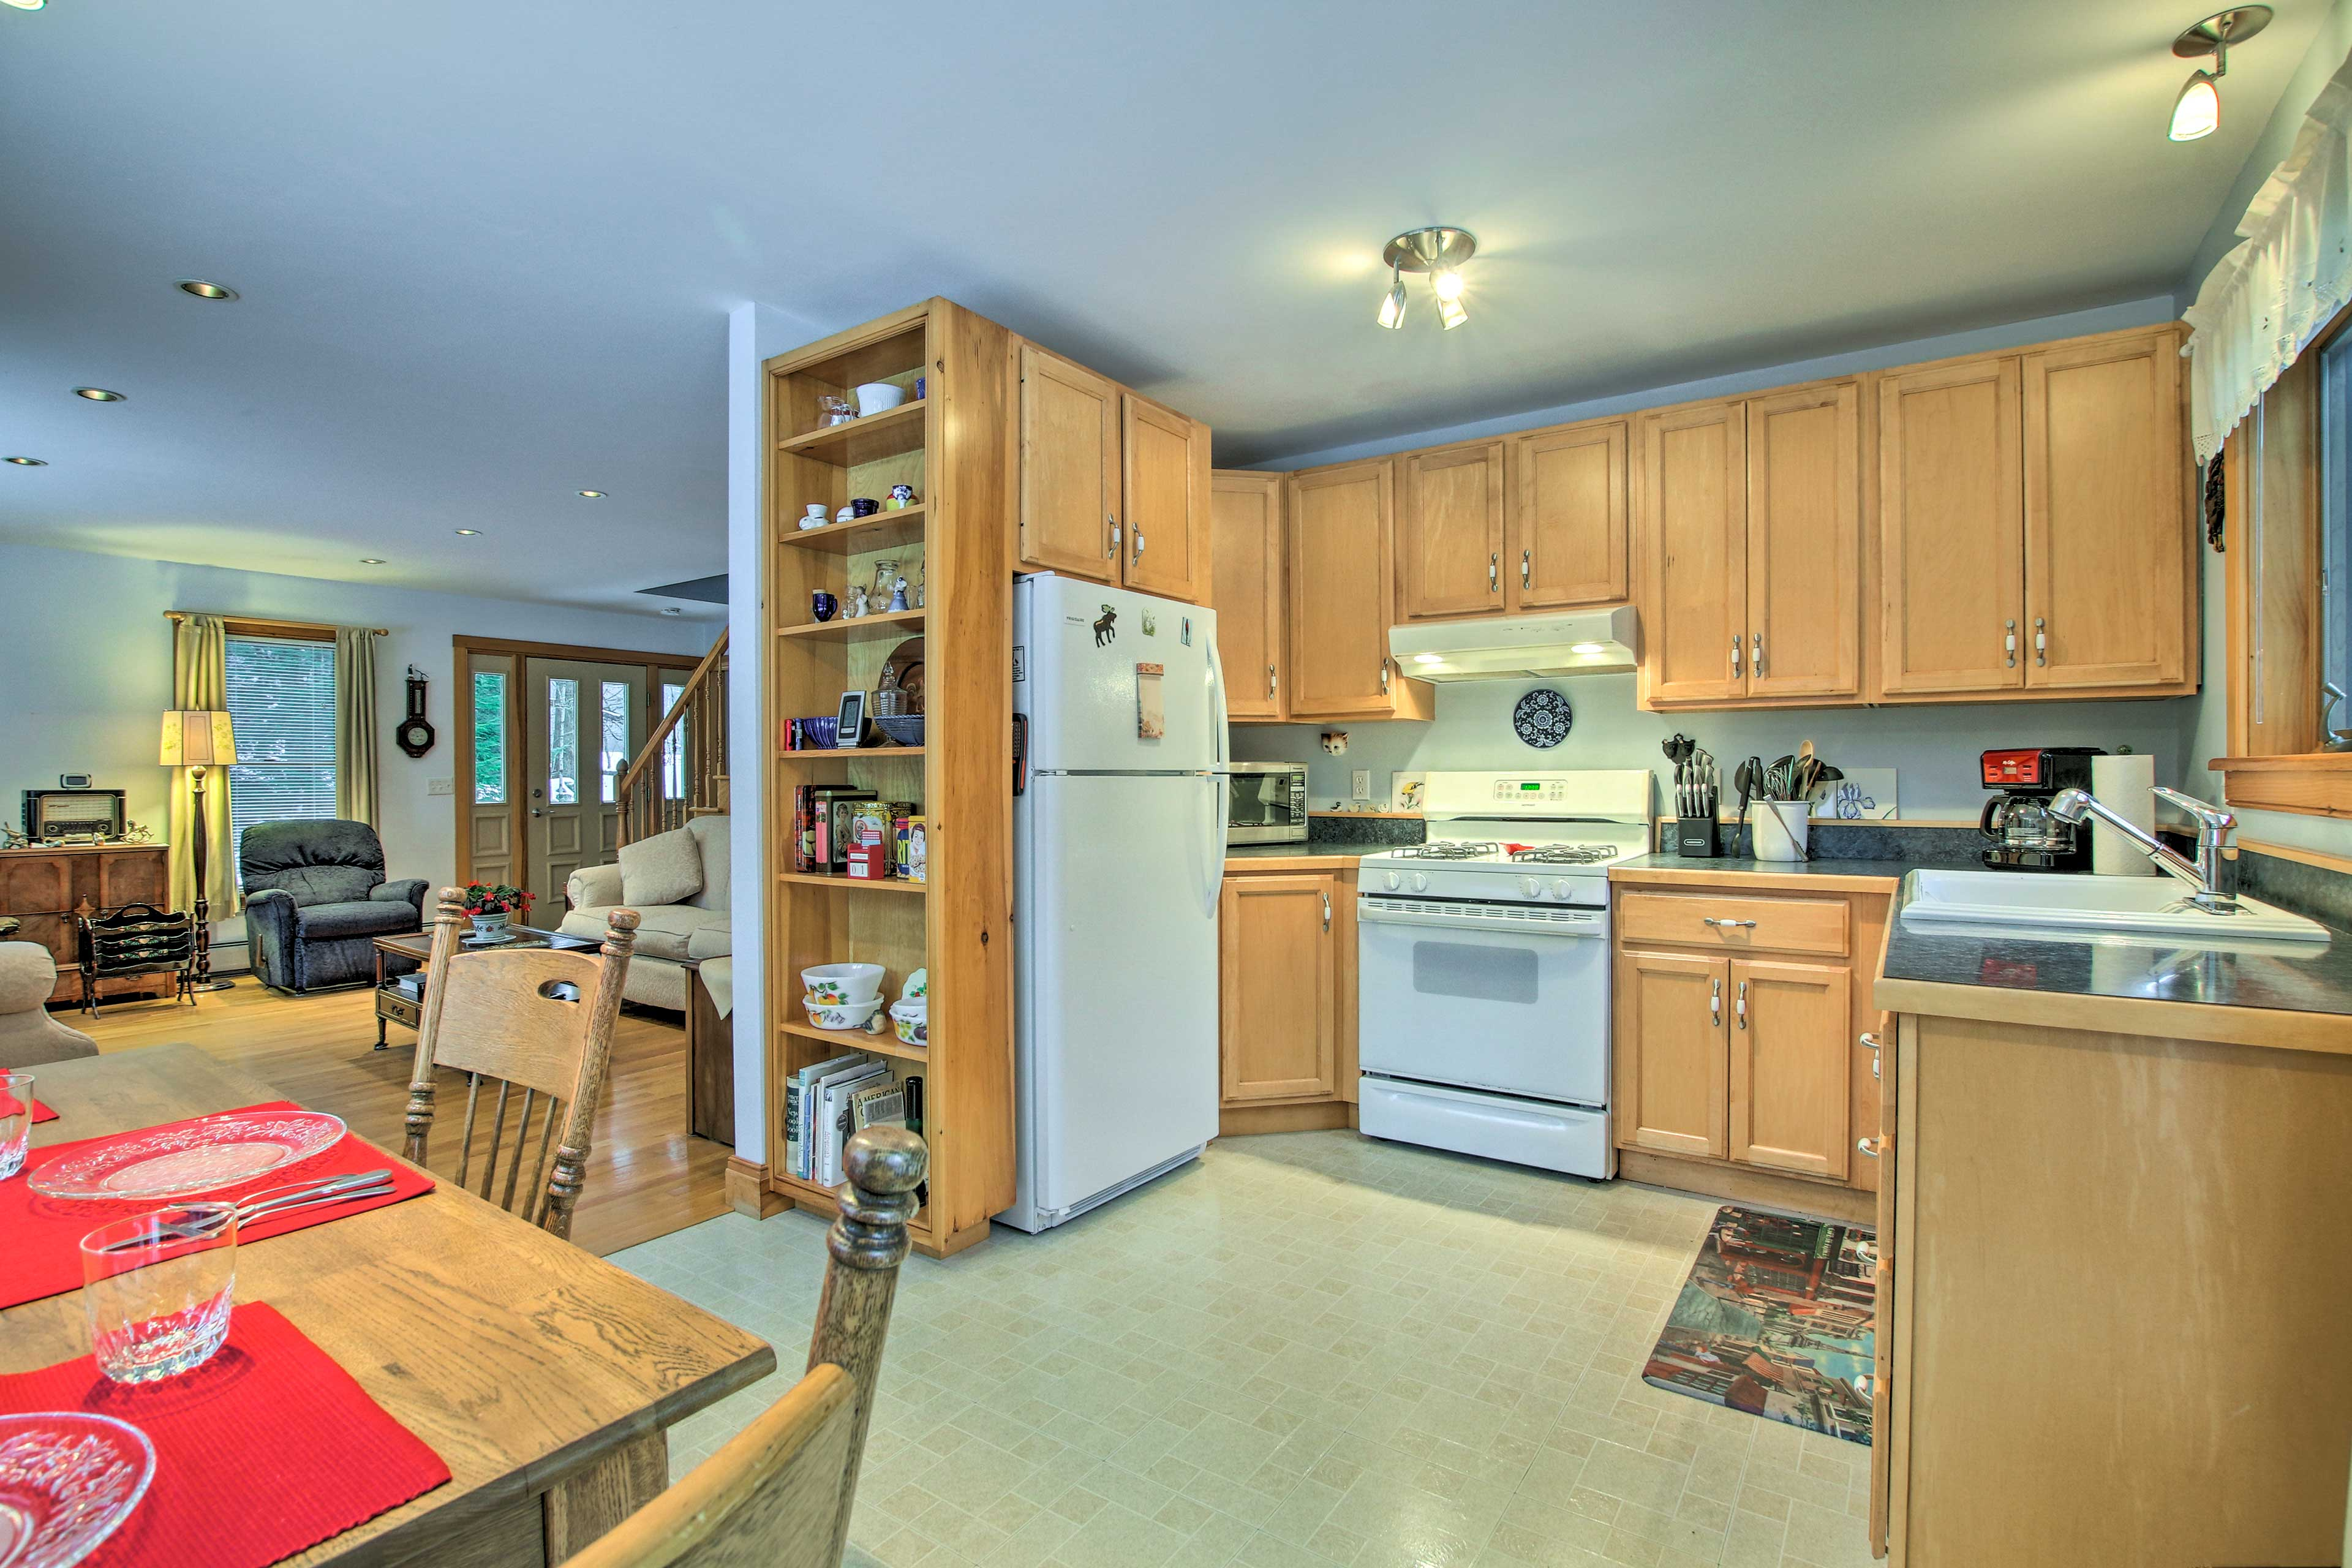 The living room flows into the well-equipped kitchen and dining area.